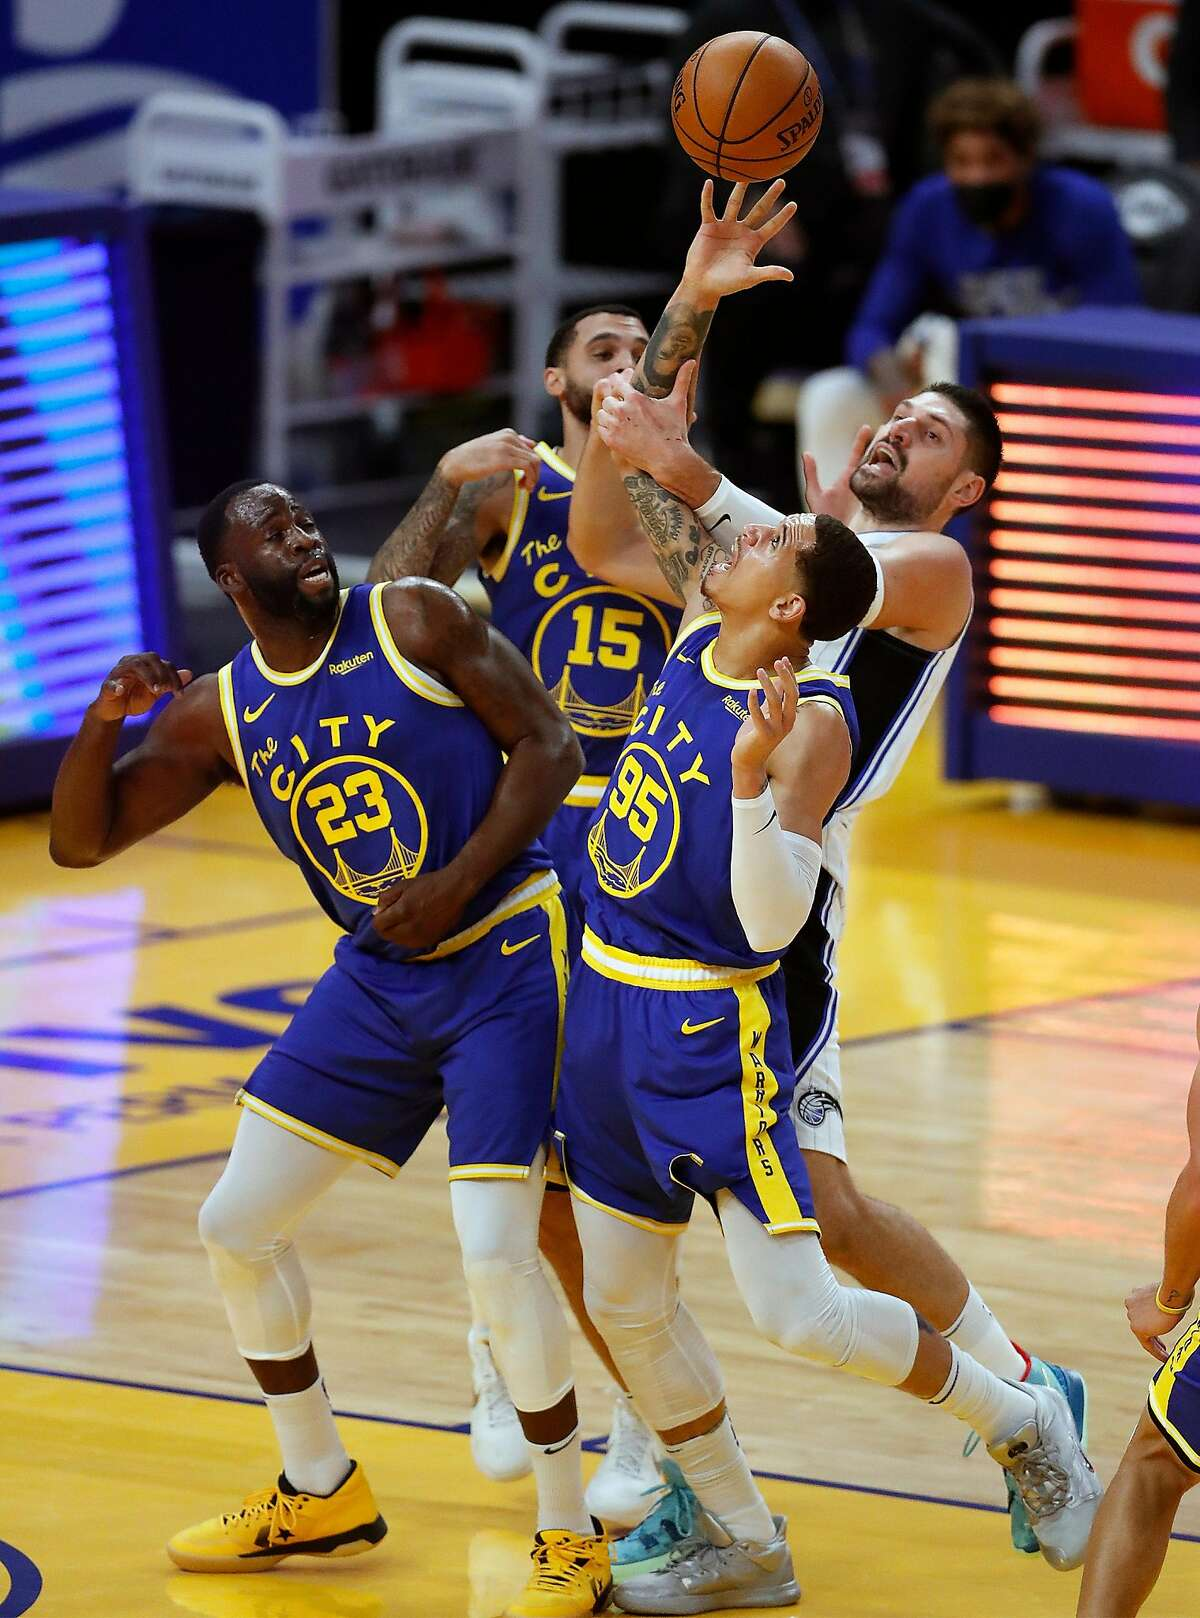 Golden State Warriors' Juan Toscano Anderson, Draymond Green and Mychal Mulder vie for rebound against Orlando Magic's Nikola Vucevic in 1st quarter during NBA game at Chase Center in San Francisco, Calif., on Thursday, February 11, 2021.